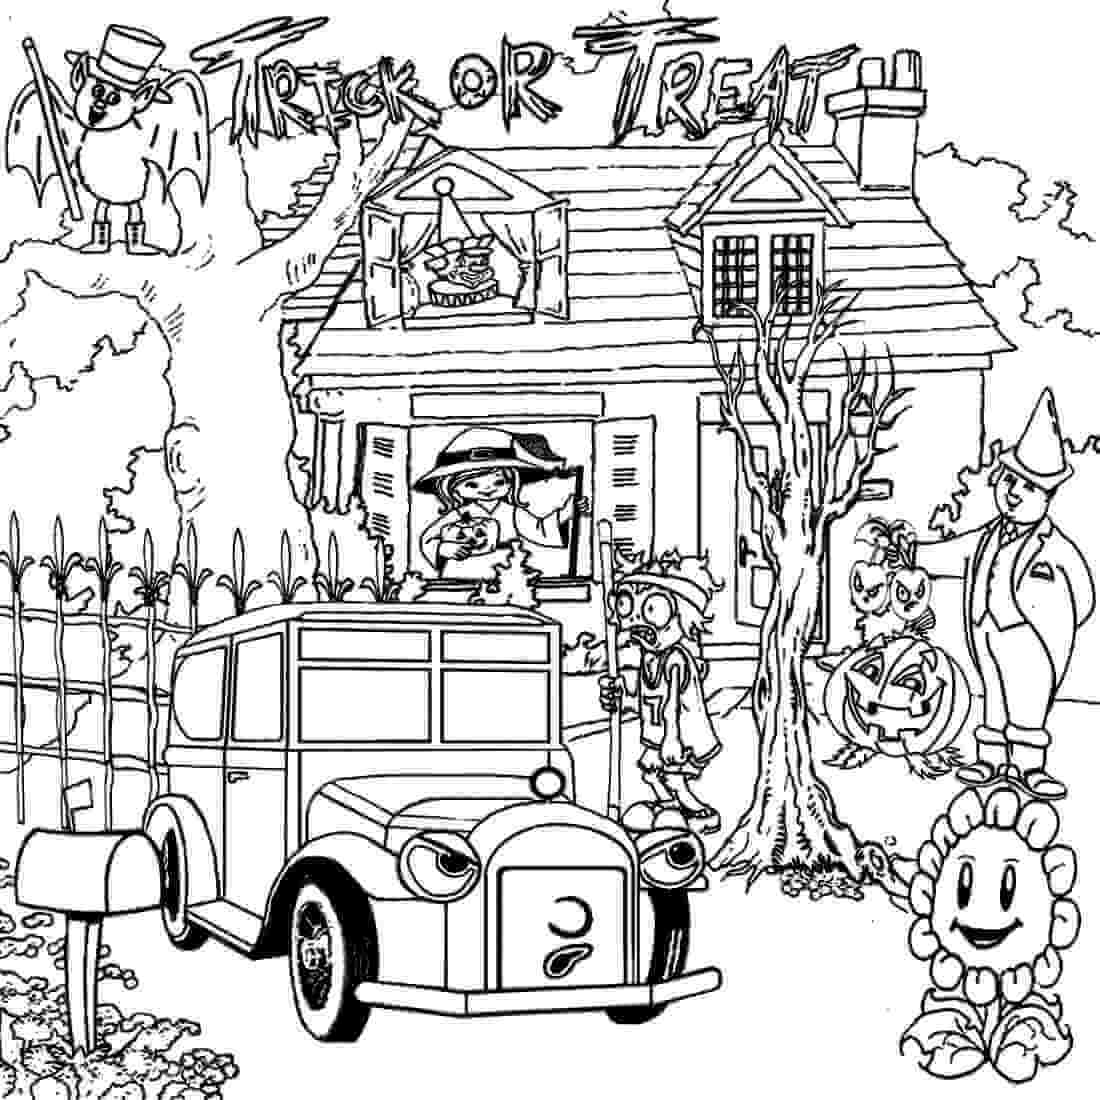 coloring page haunted house 25 free printable haunted house coloring pages for kids coloring haunted house page